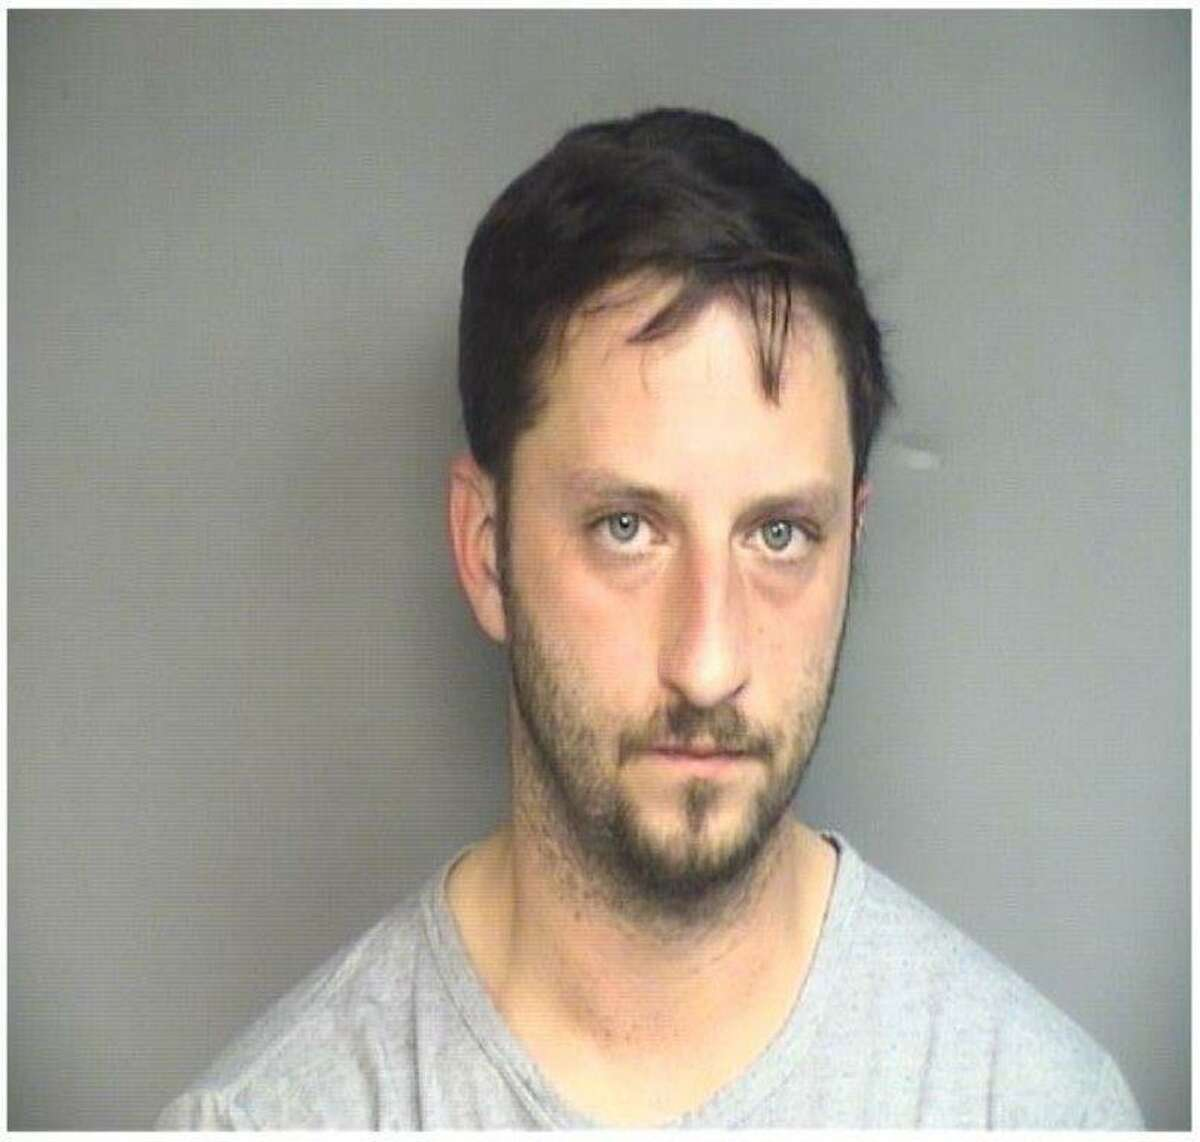 Spero Moschos, 35, of Stamford was arrested and charged with being a lookout to Joseph Boccuzzi when he allegedly robbed the First County Bank in Springdale on Feb. 3, 2017. Moschos recently finished an four and one half year federal prison term for robbing 11 area banks in 2009.